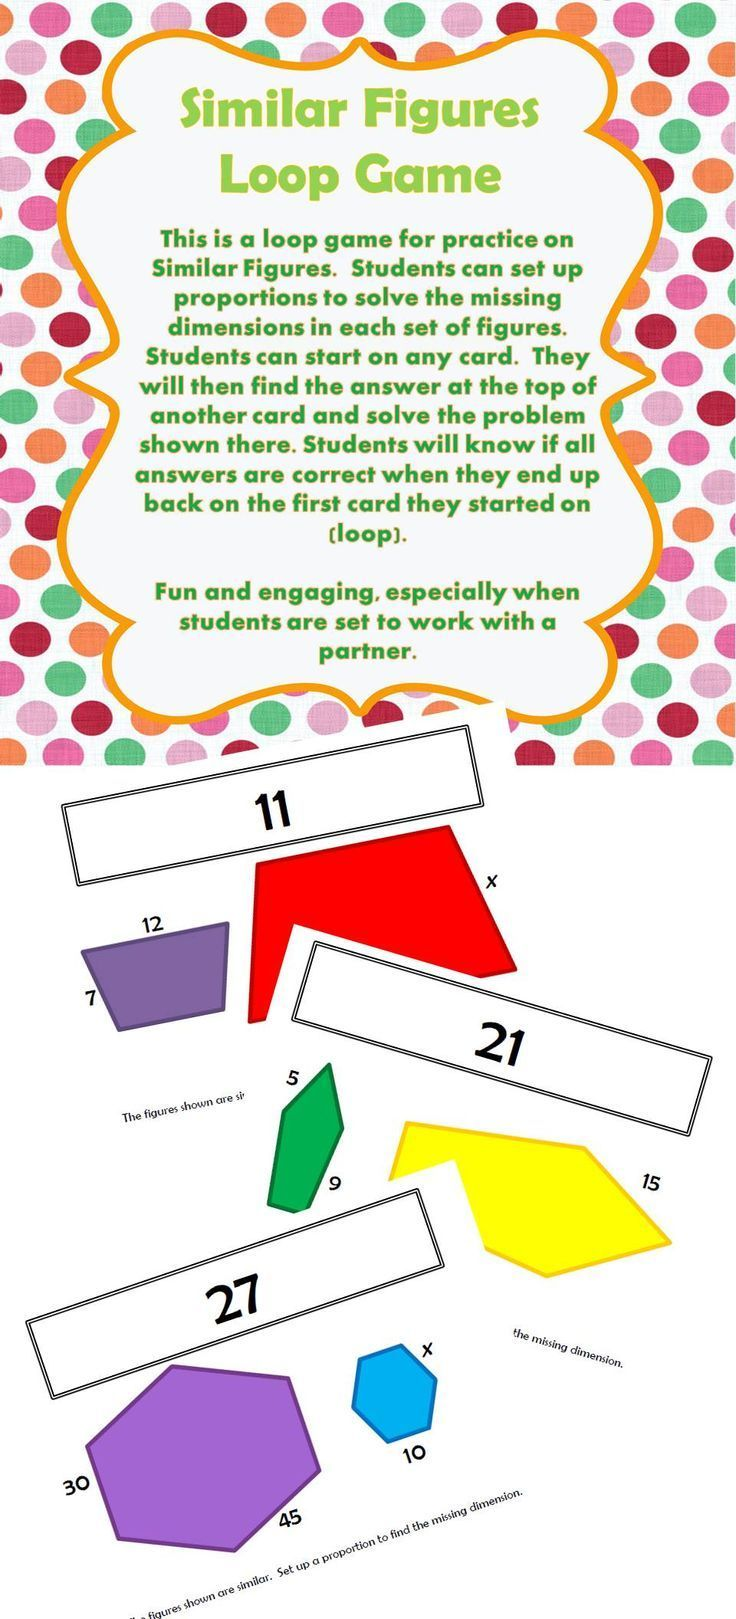 Similar Figures Loop Game With Missing Dimensions Solve Using Proportions Elementary Measurement Activities Secondary Math Ccss Math